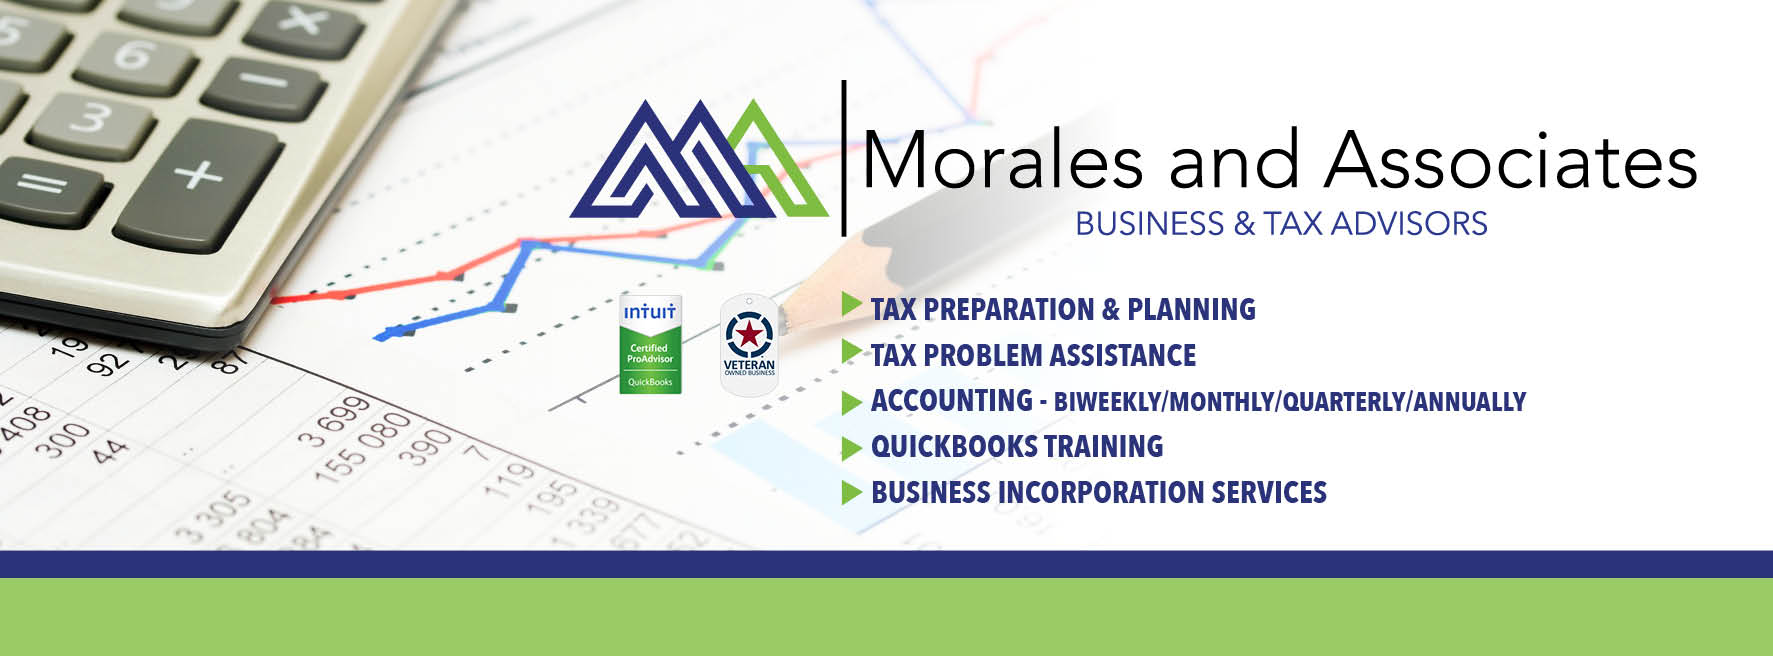 Case Study: Morales and Associates \